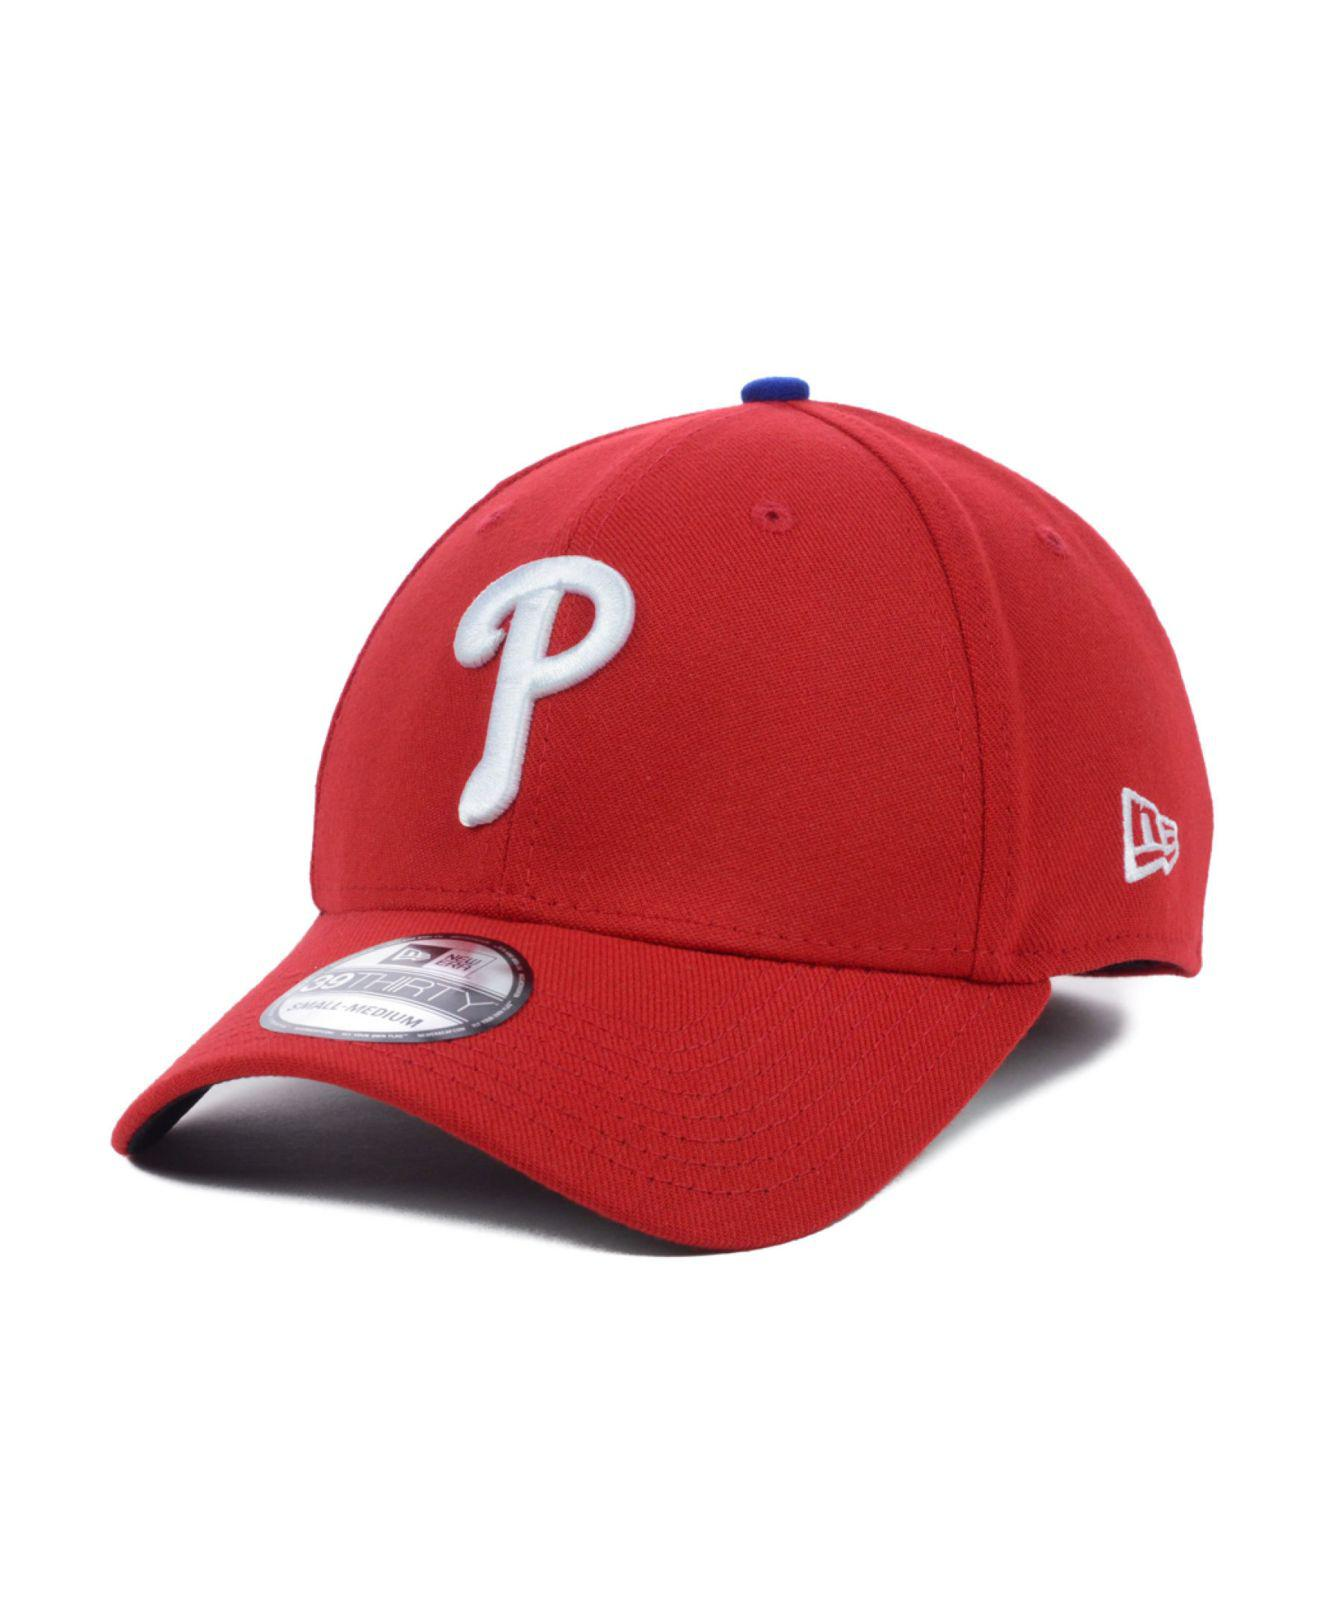 cb46f73497e Lyst - KTZ Philadelphia Phillies Mlb Team Classic 39thirty Cap in ...